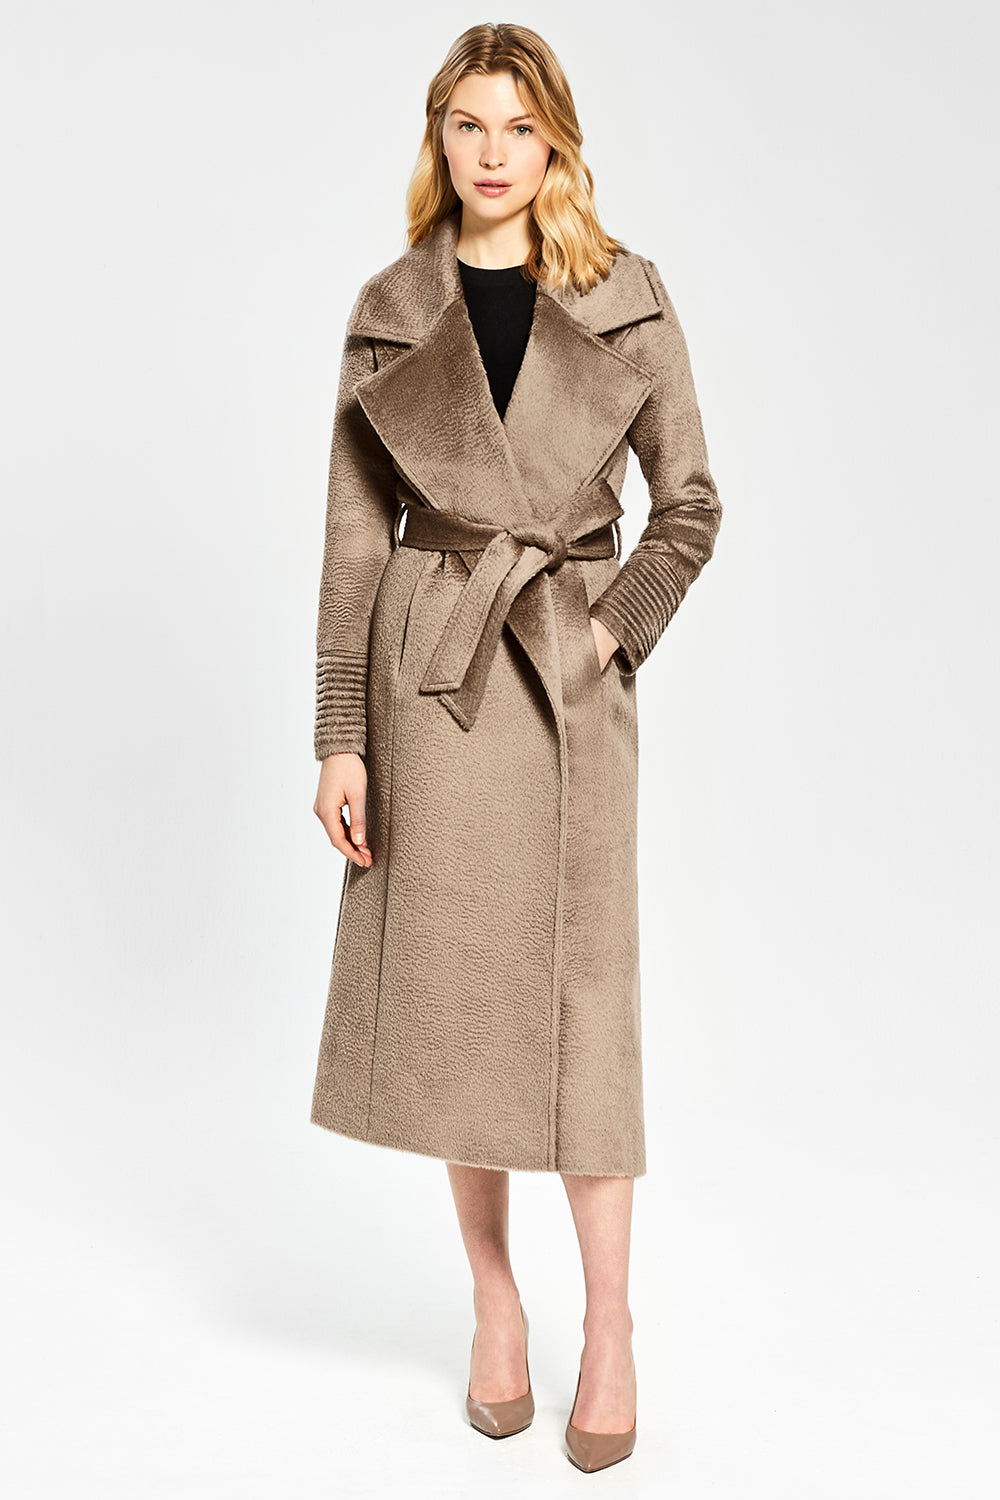 Sentaler Suri Alpaca Long Notched Collar Wrap Coat featured in Suri Alpaca and available in Hazelnut. Seen from front.